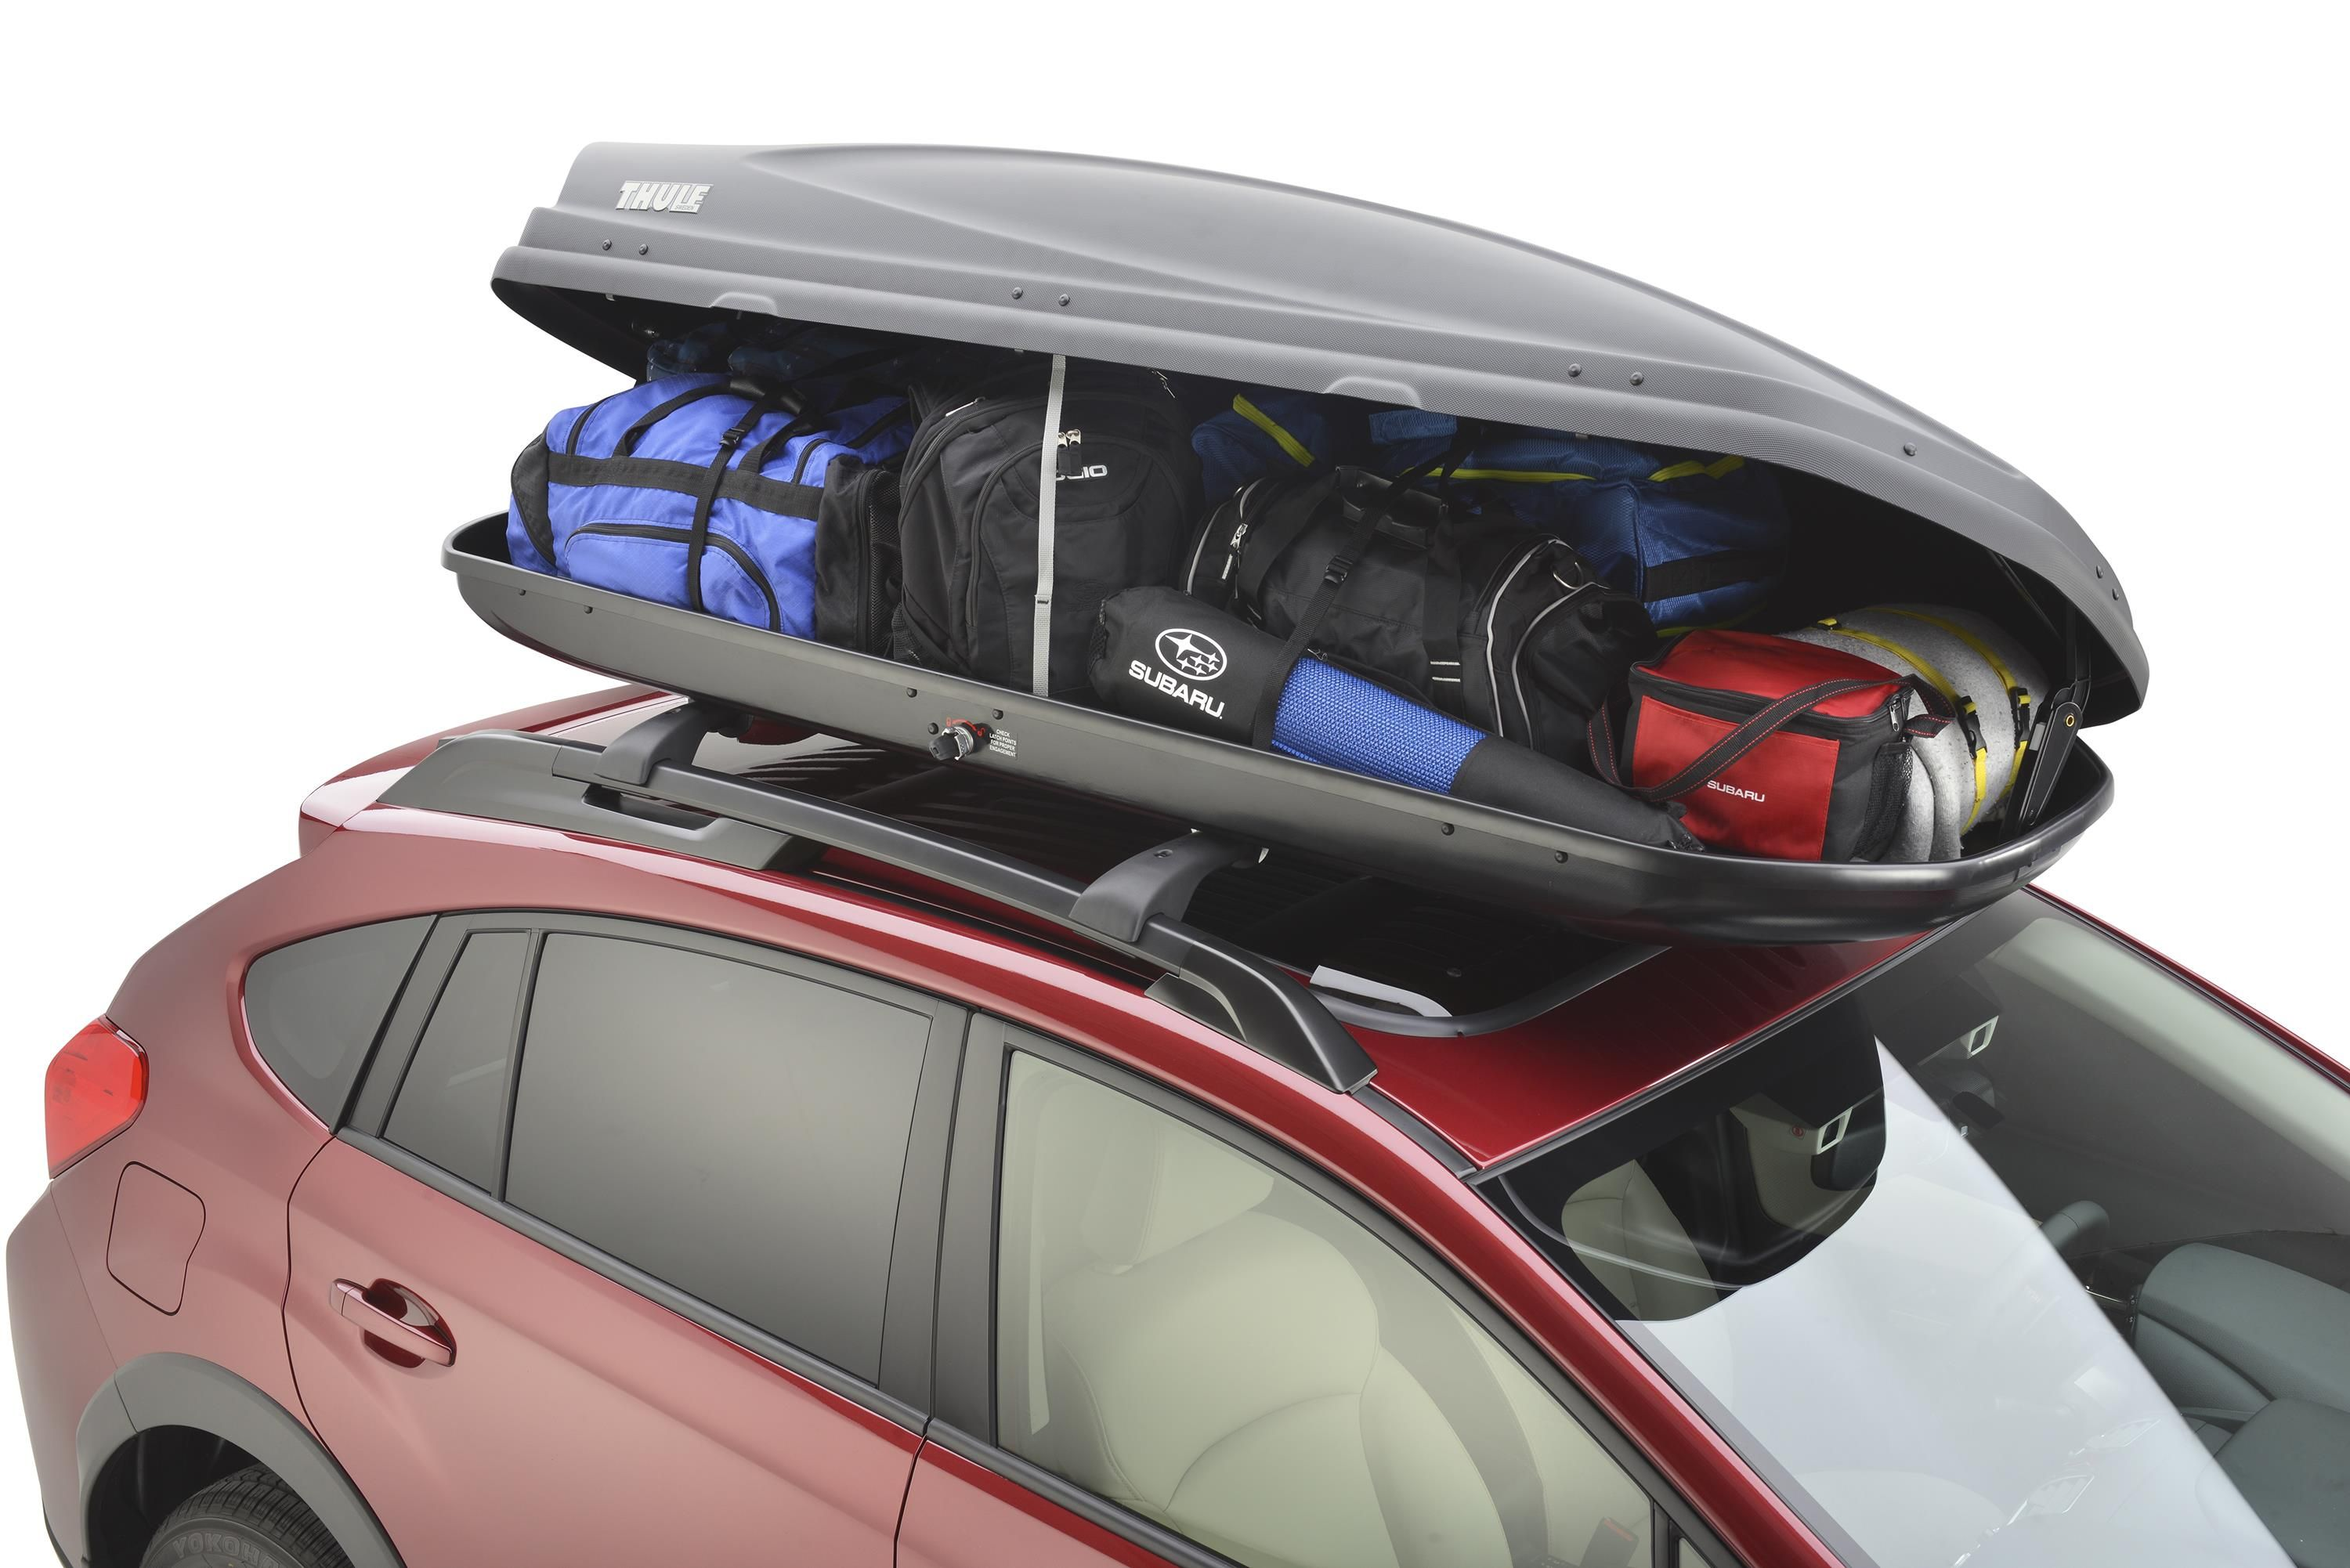 Roof Cargo Carrier Extended This Fits Your 2017 Subaru Crosstrek Cargo Carrier Subaru Subaru Accessories